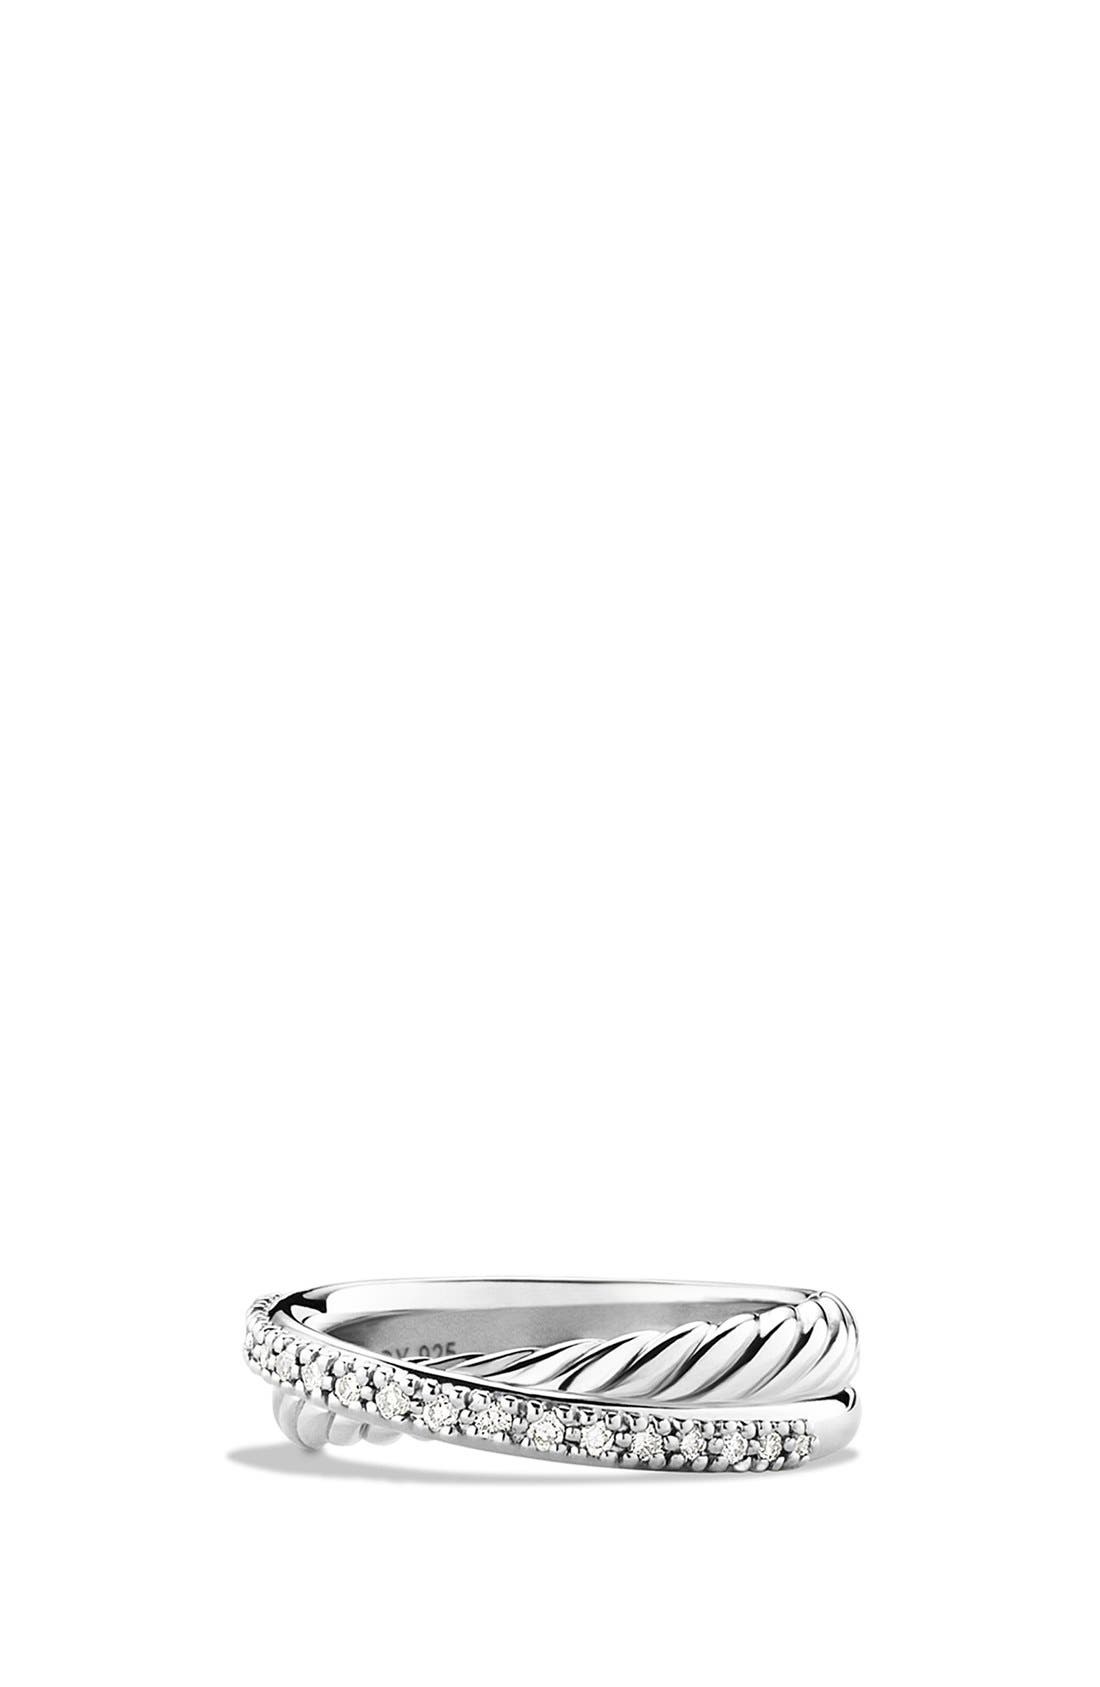 'Crossover' Ring with Diamonds,                         Main,                         color, SILVER